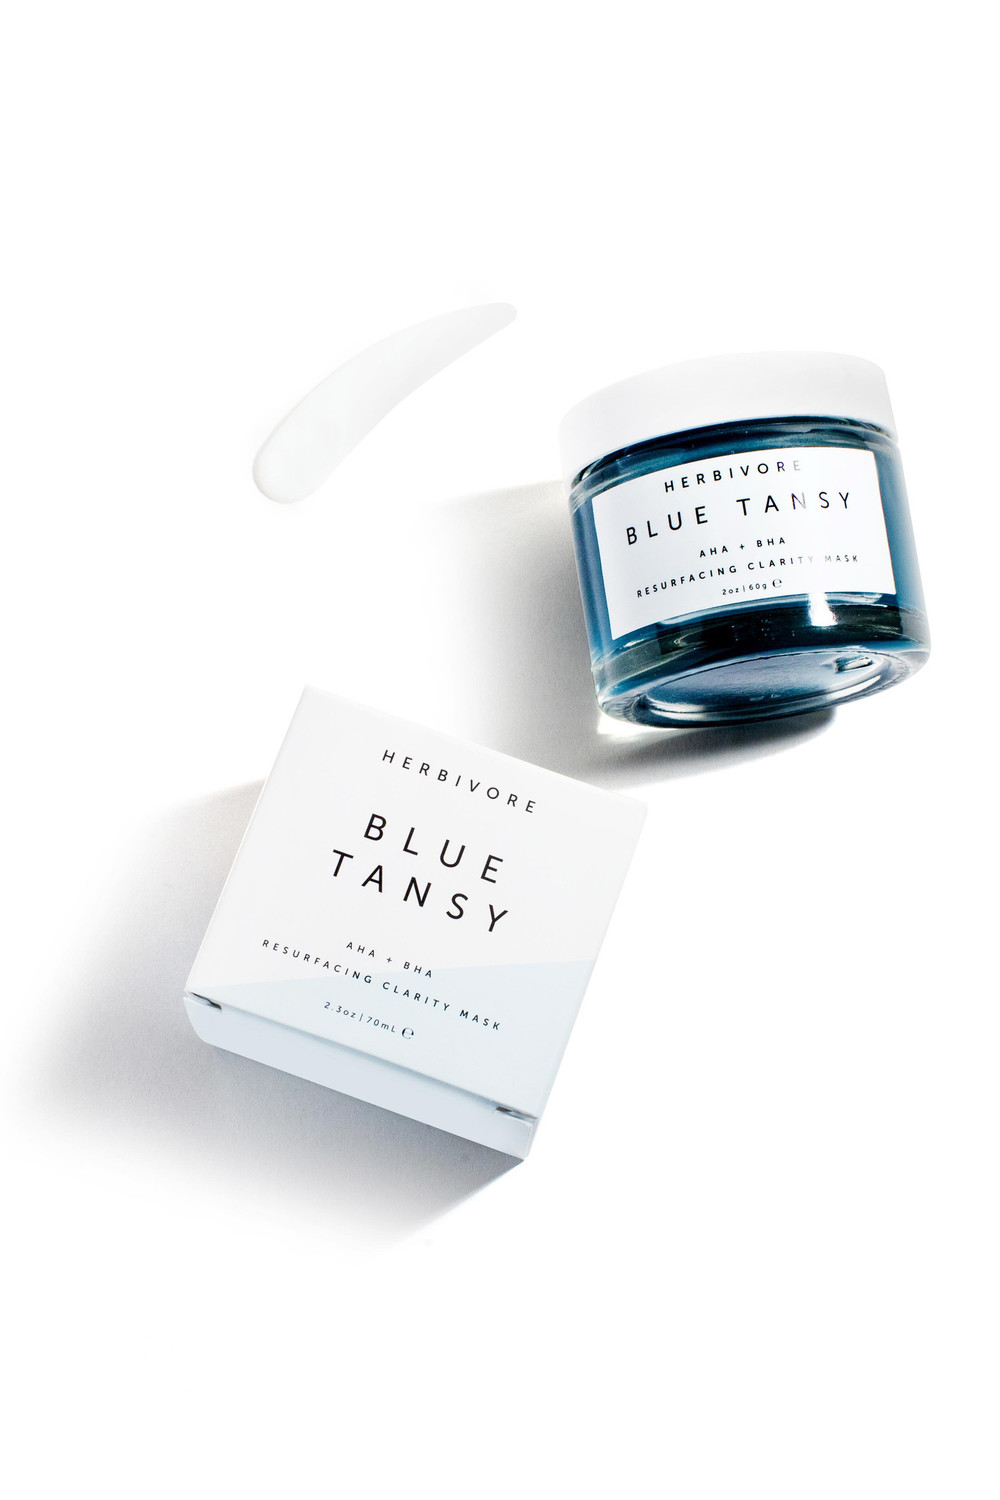 HERBIVORE BOTANICALS - Blue Tansy AHA + Resurfacing Clarity Mask (A joyous experience)